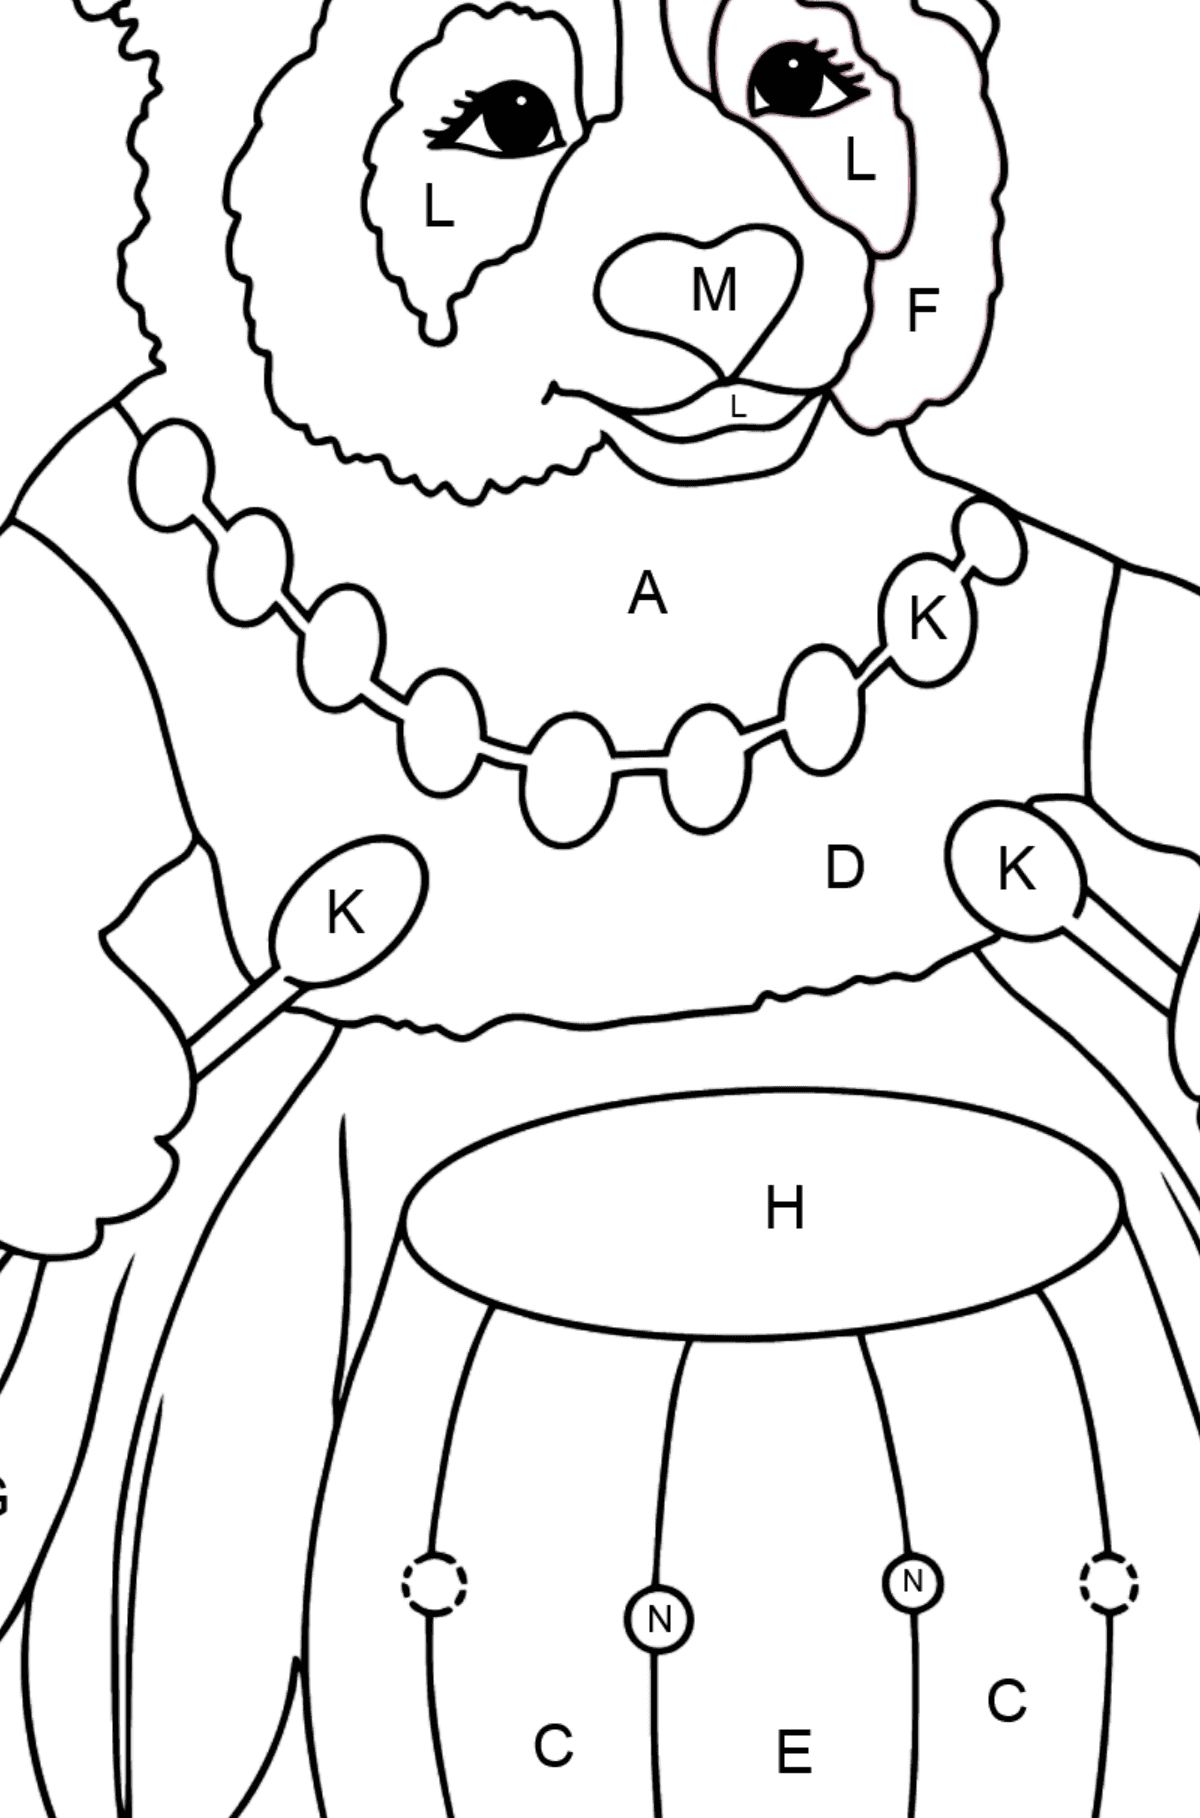 Coloring Page - A Panda and a Drum - Coloring by Letters for Kids